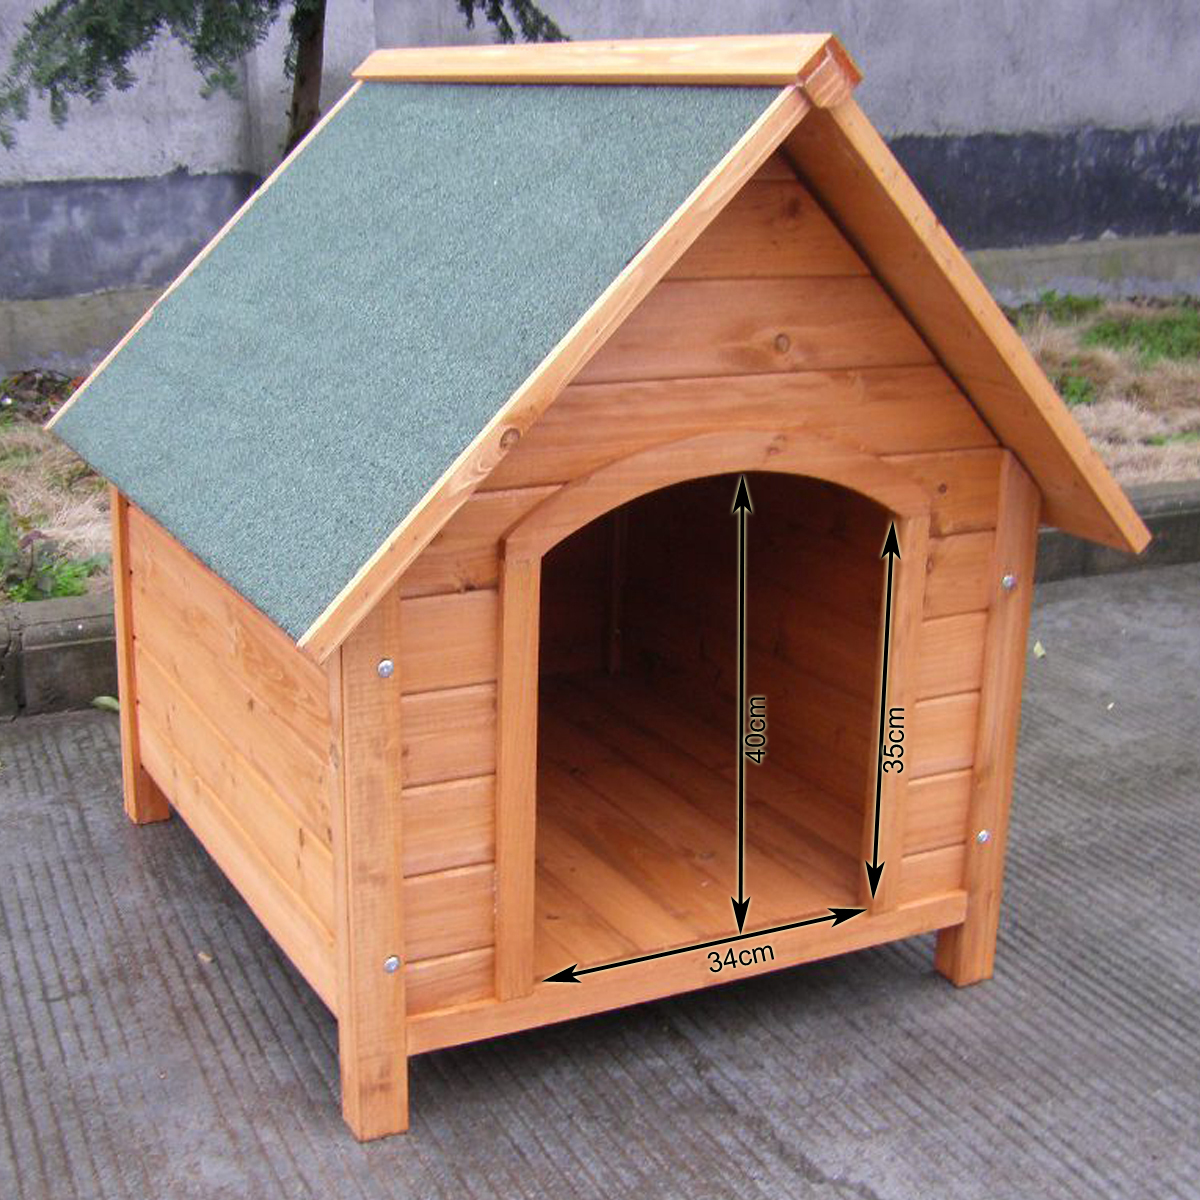 weather proof pet puppy wooden dog kennel house indoor. Black Bedroom Furniture Sets. Home Design Ideas